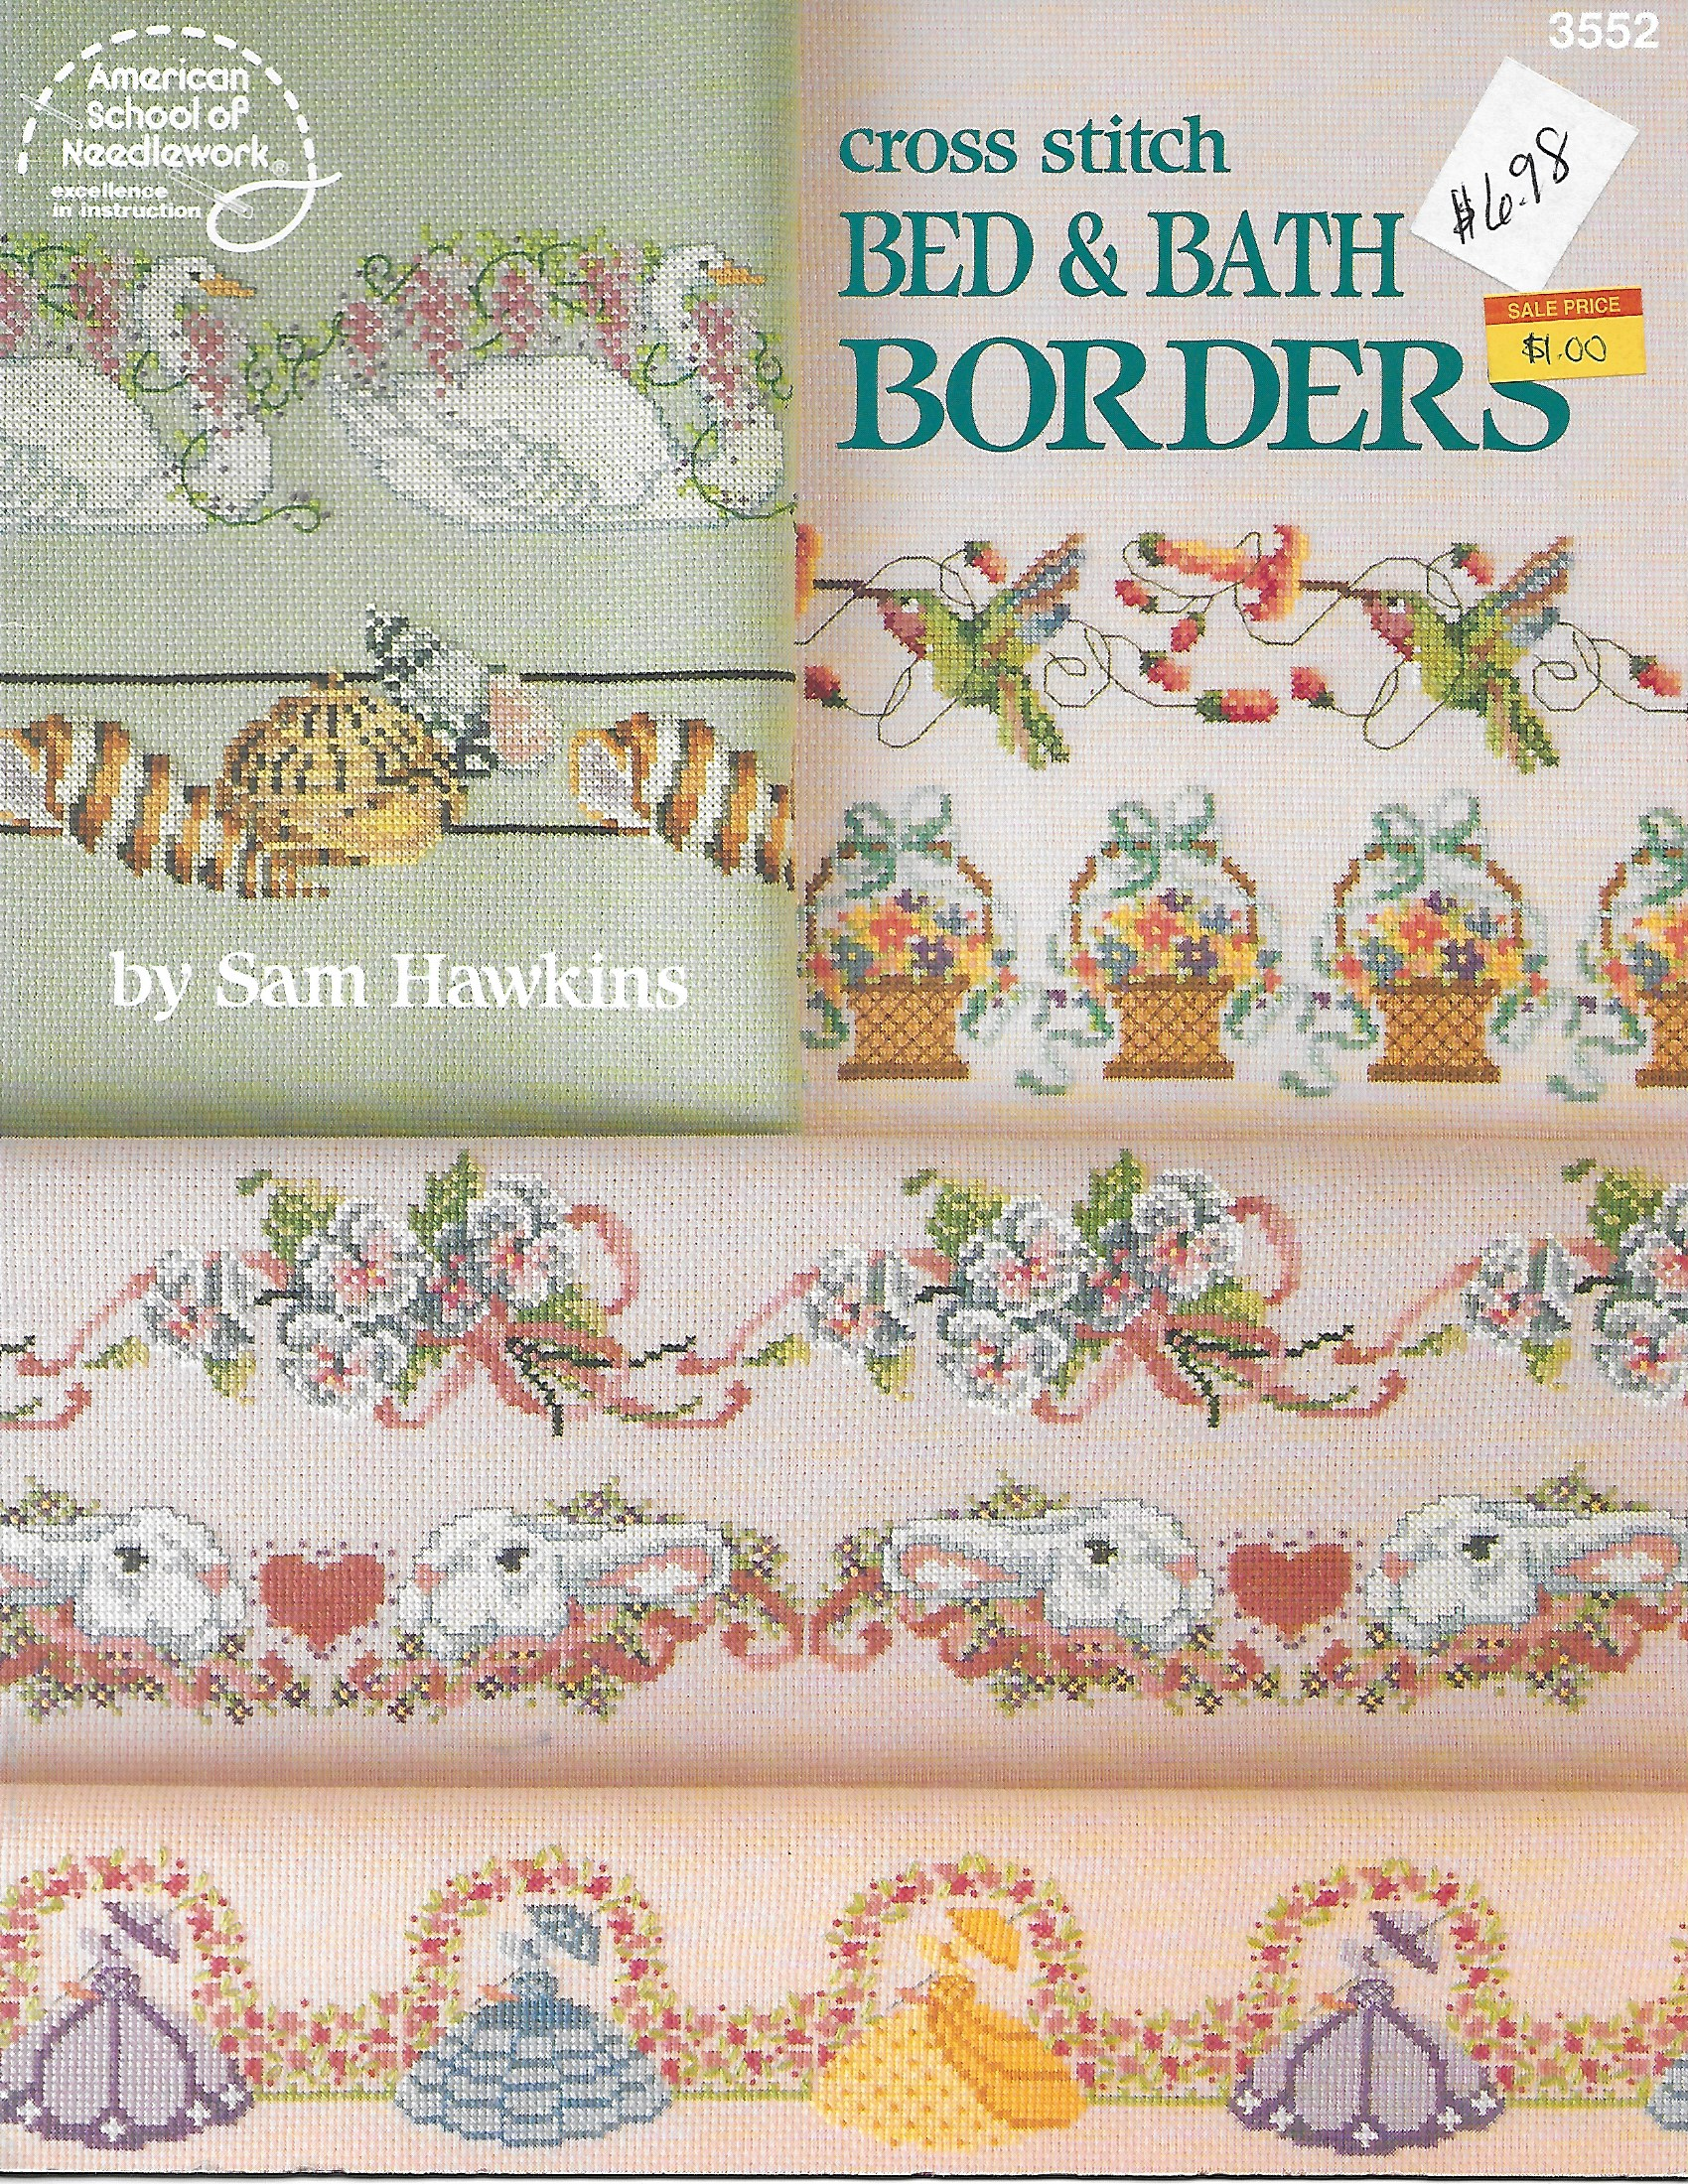 American School of Needlework 3552 Cross Stitch Bed & Bath Borbers by Sam Hawkins